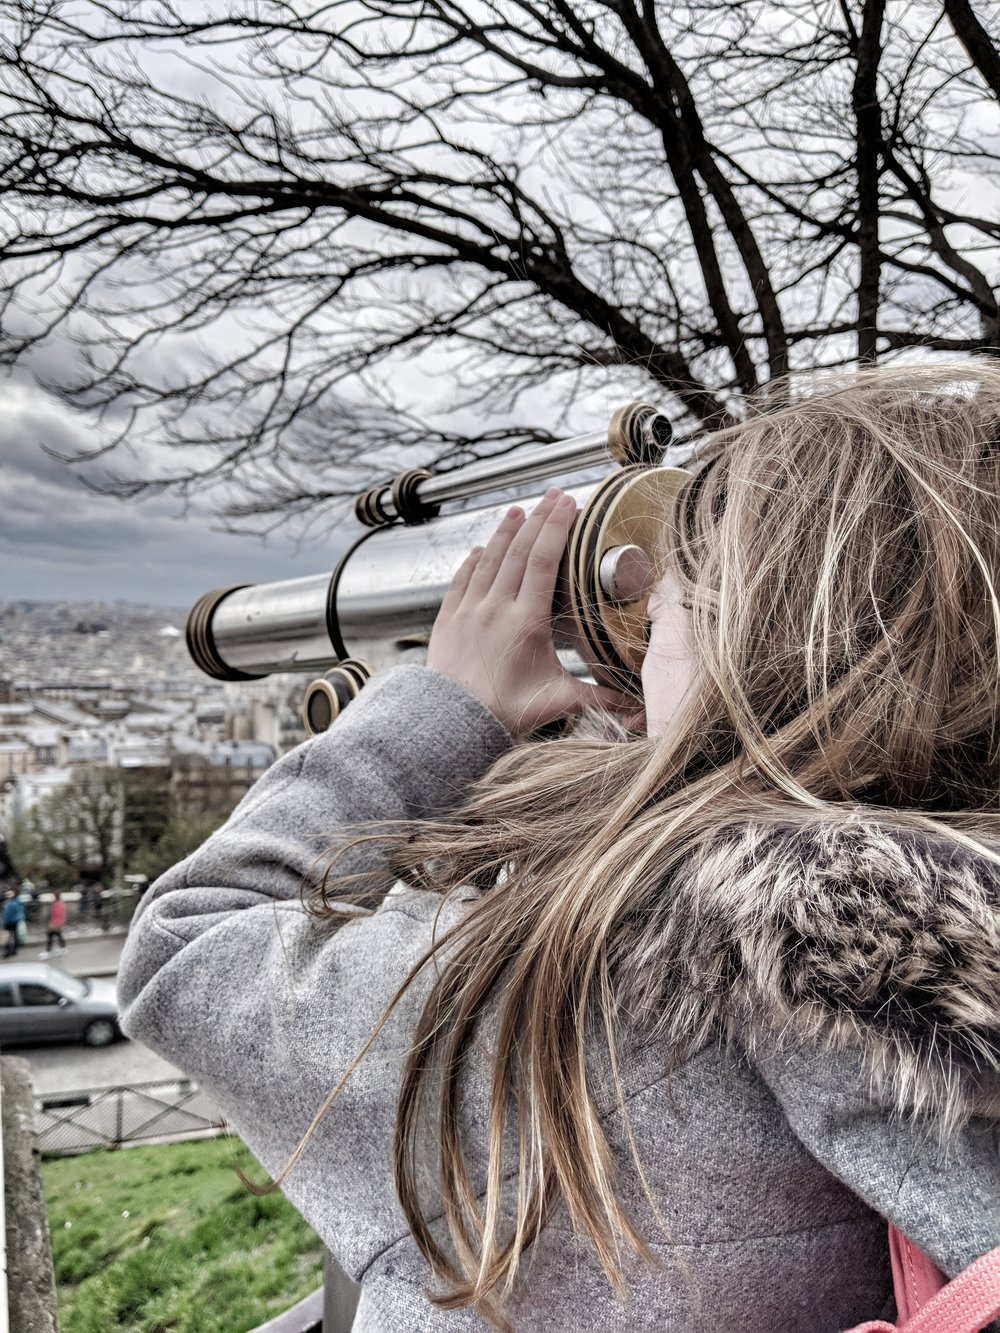 Views across Paris - Montmartre